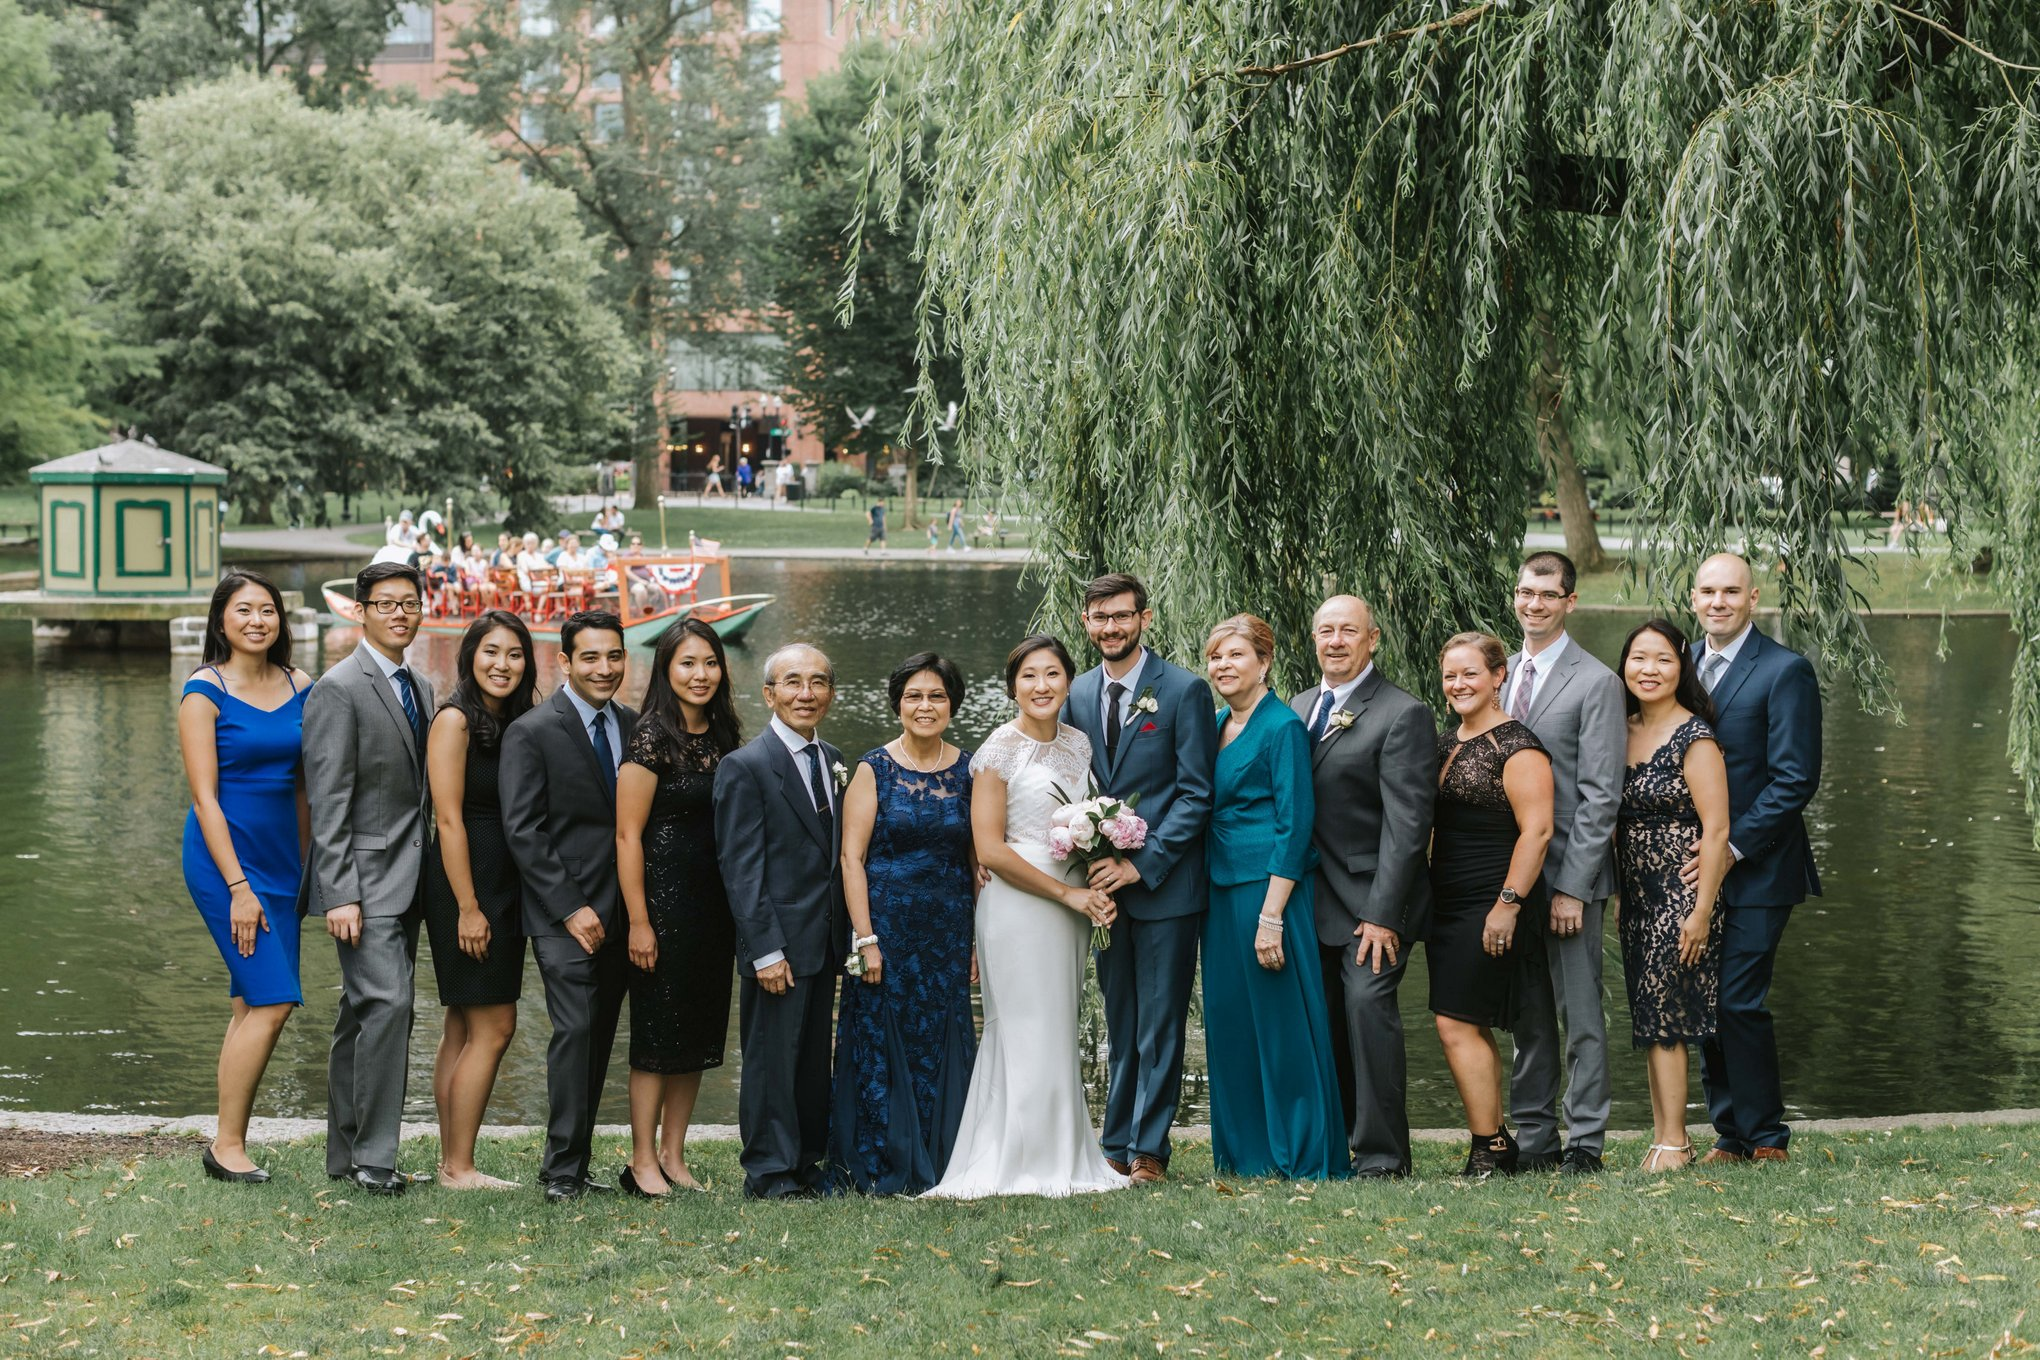 Boston-City-Hall-Elopement-Wedding-Public-Garden-Beacon-Hill-13.JPG